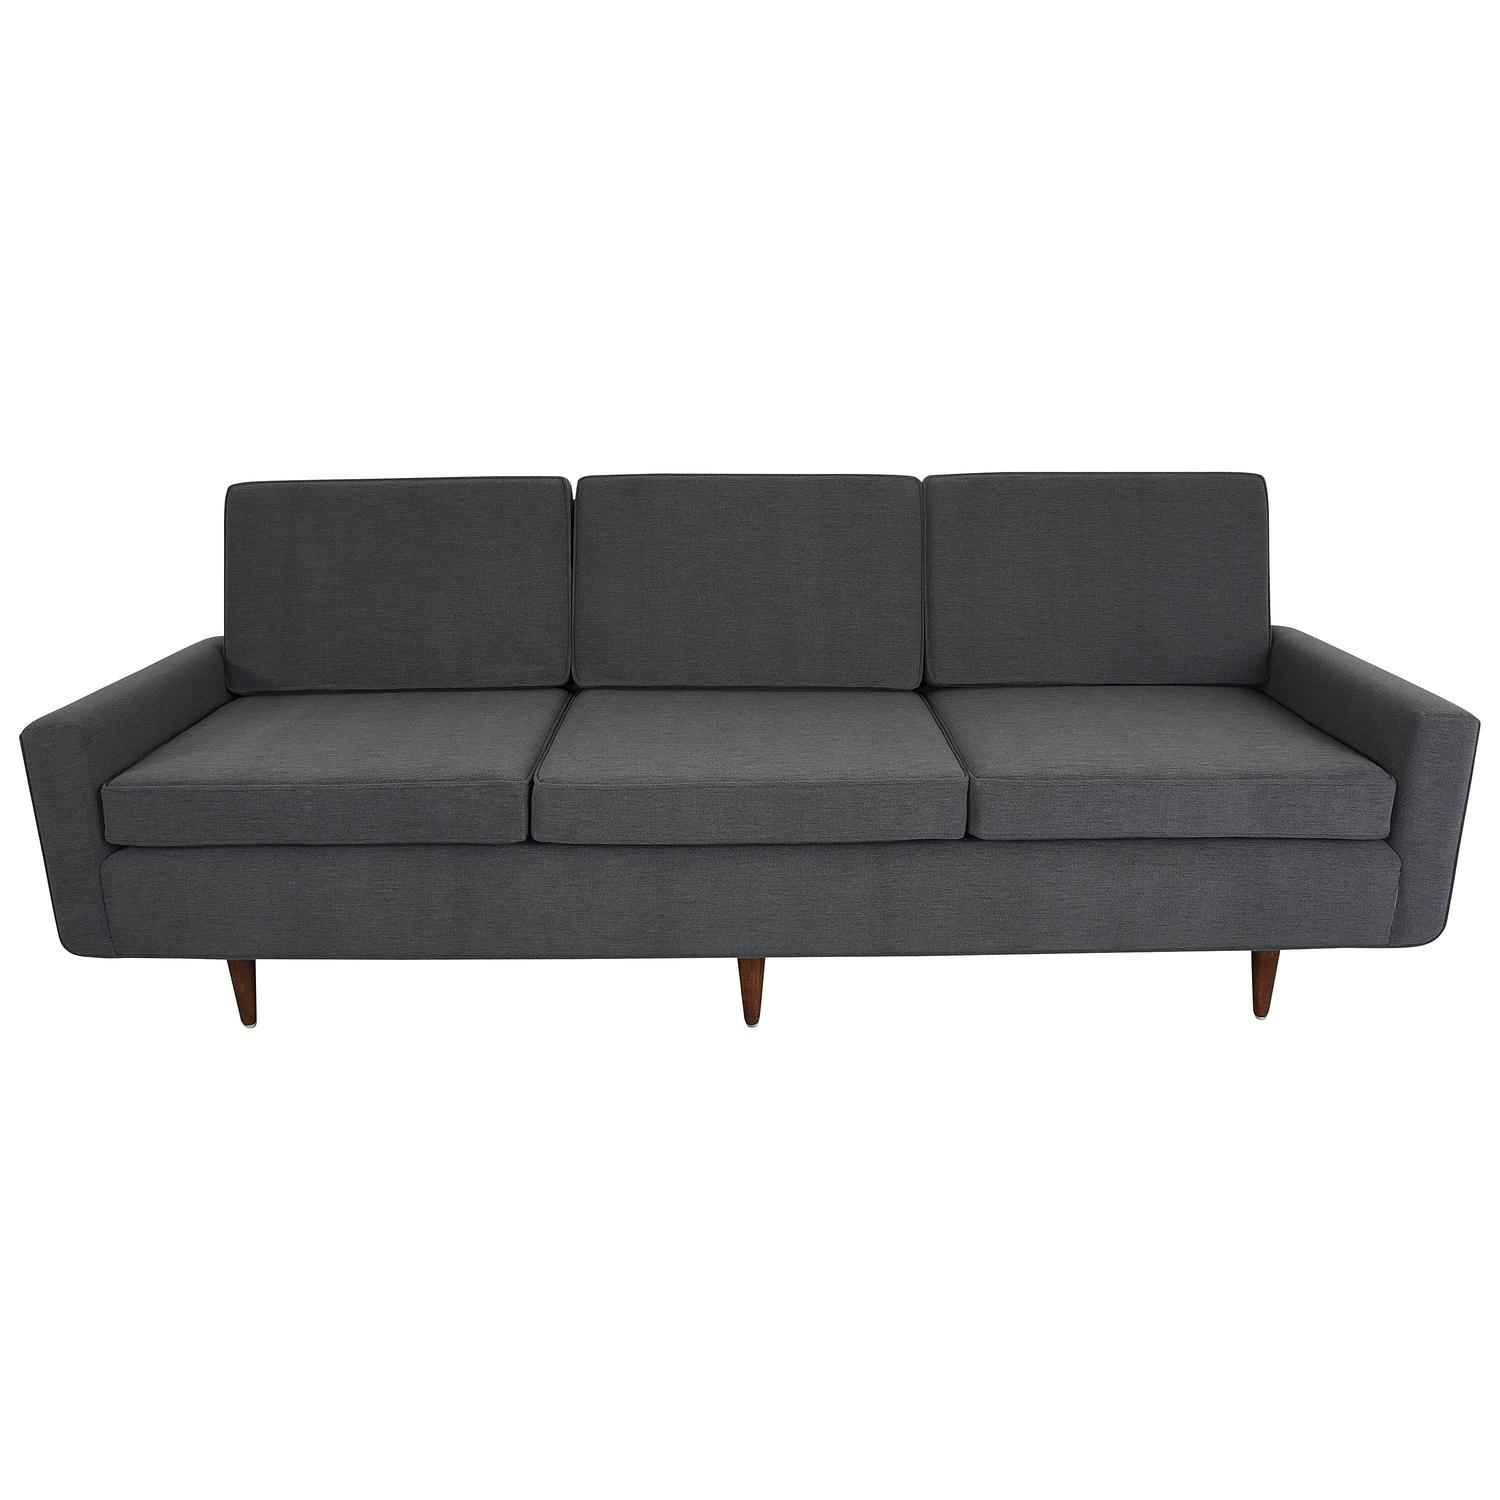 Florence Knoll Sofa Three Seat Sofa Model 26 Pair Available For Pertaining To Florence Knoll Fabric Sofas (Image 7 of 15)